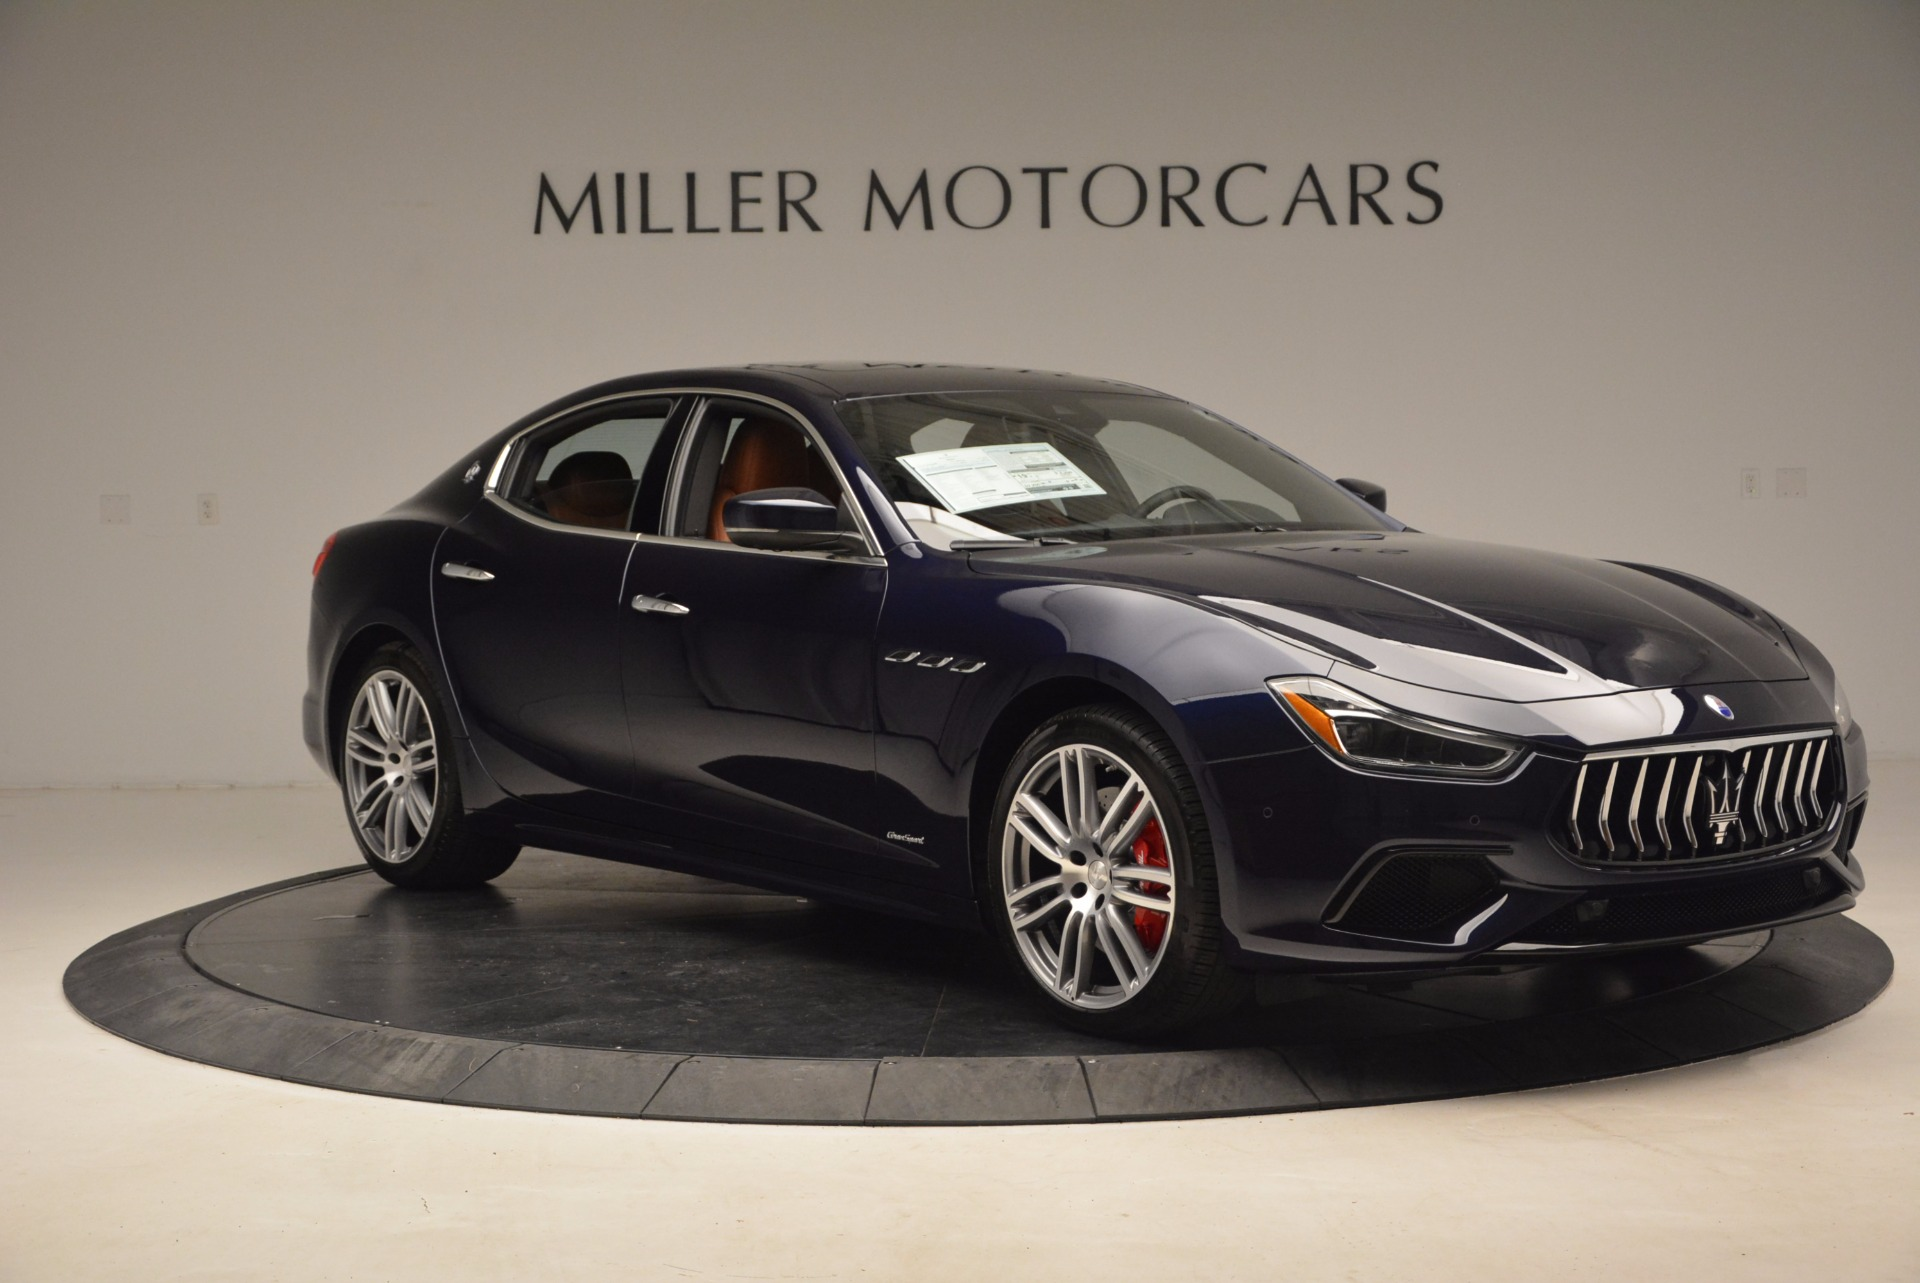 New-2018-Maserati-Ghibli-S-Q4-Gransport